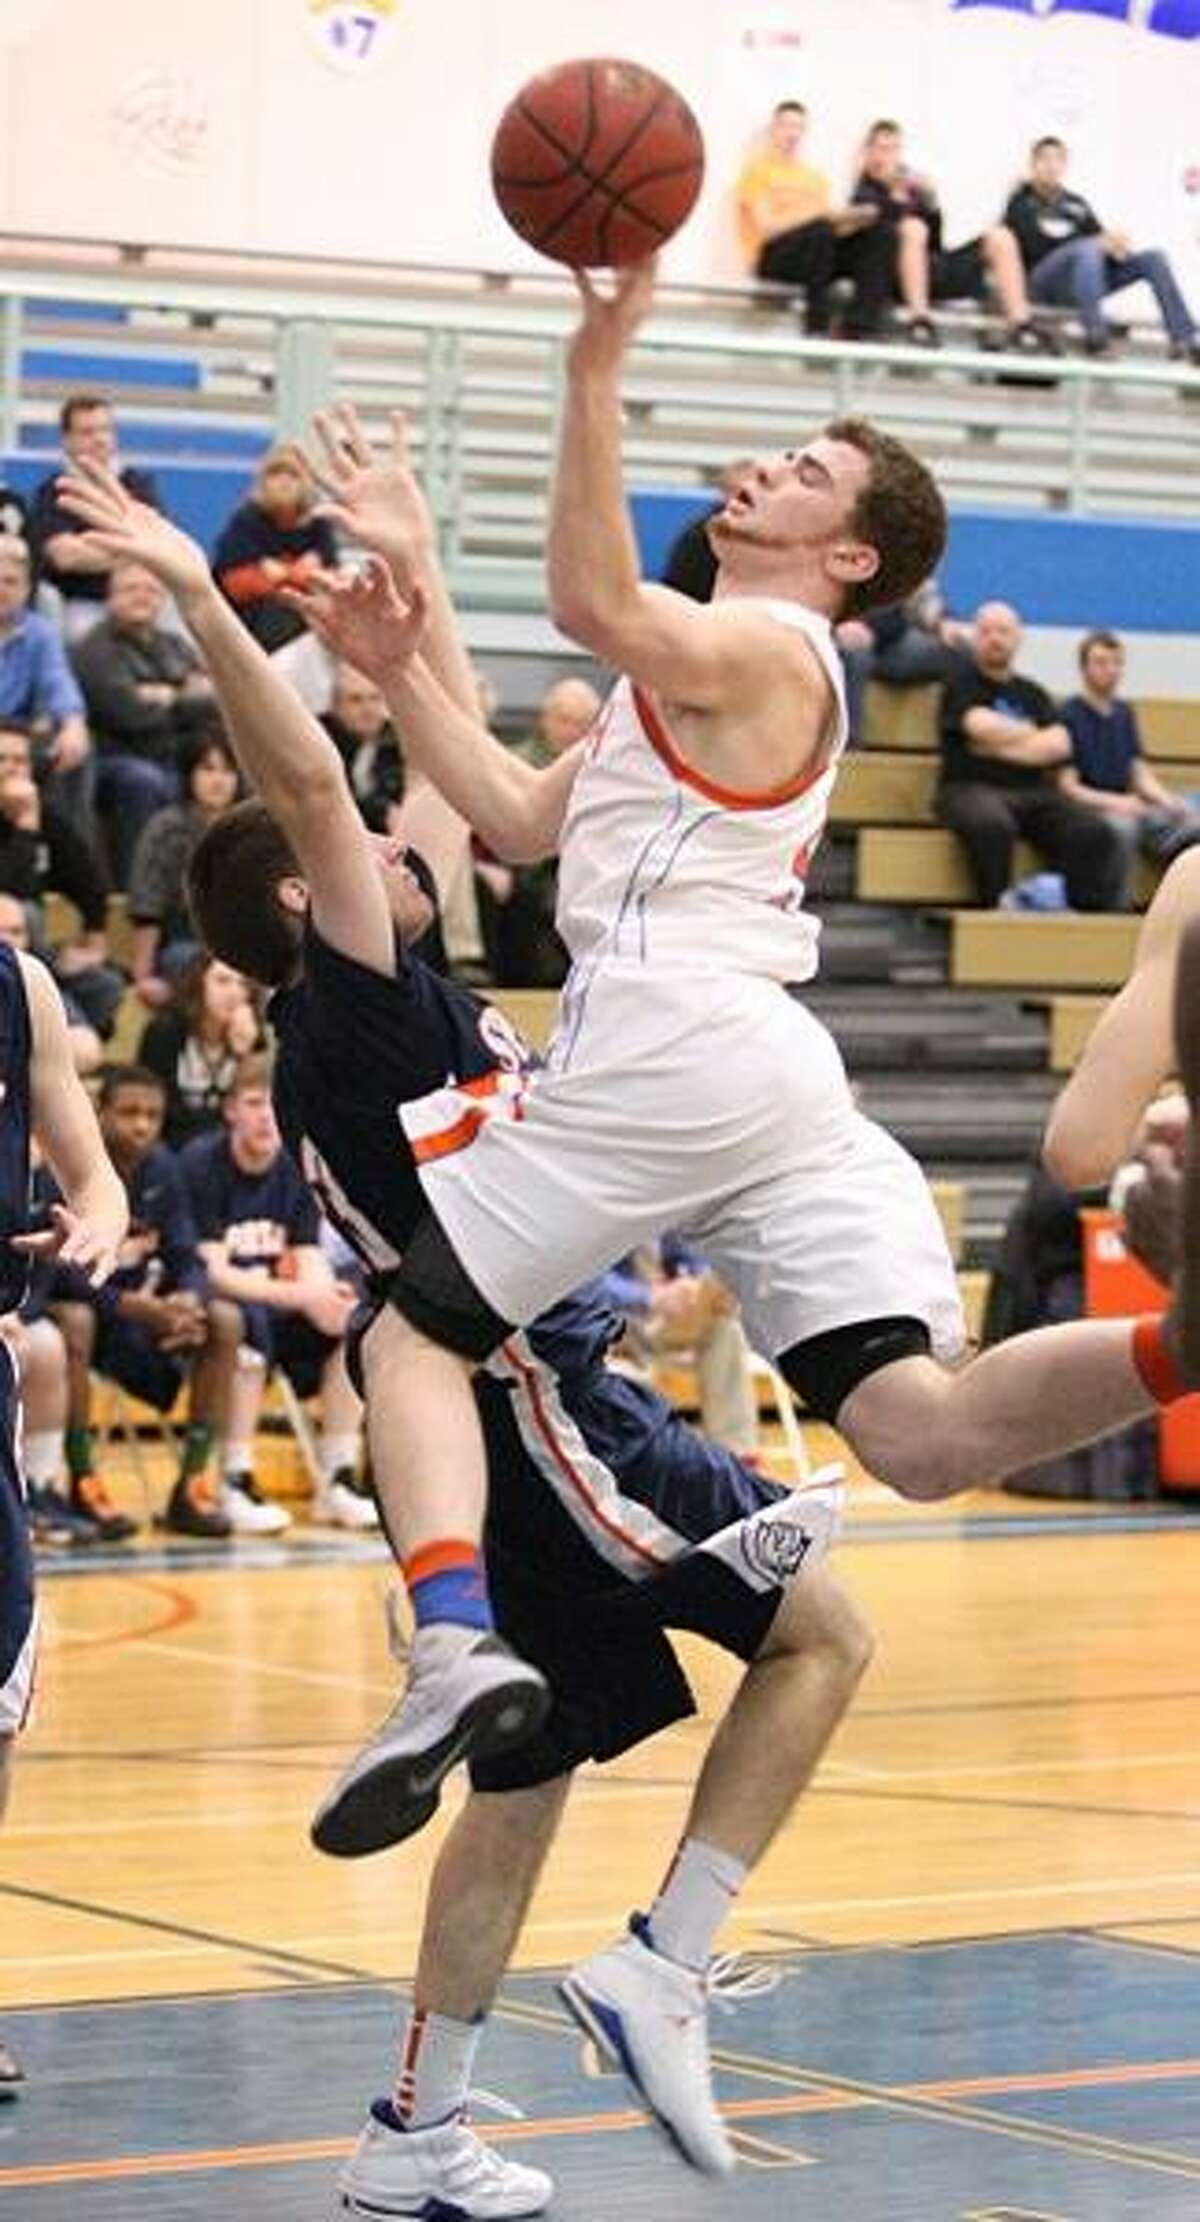 Dispatch Staff Photo by JOHN HAEGER (Twitter: @OneidaPhoto) Oneida's Kyle Peck (5) is fouled by ES-M's Bryan Reader (23) during the first half of their Class A playoff game in Oneida on Friday, Feb. 15, 2013. Peck scored 29 in Oneida's 67-64 overtime victory.